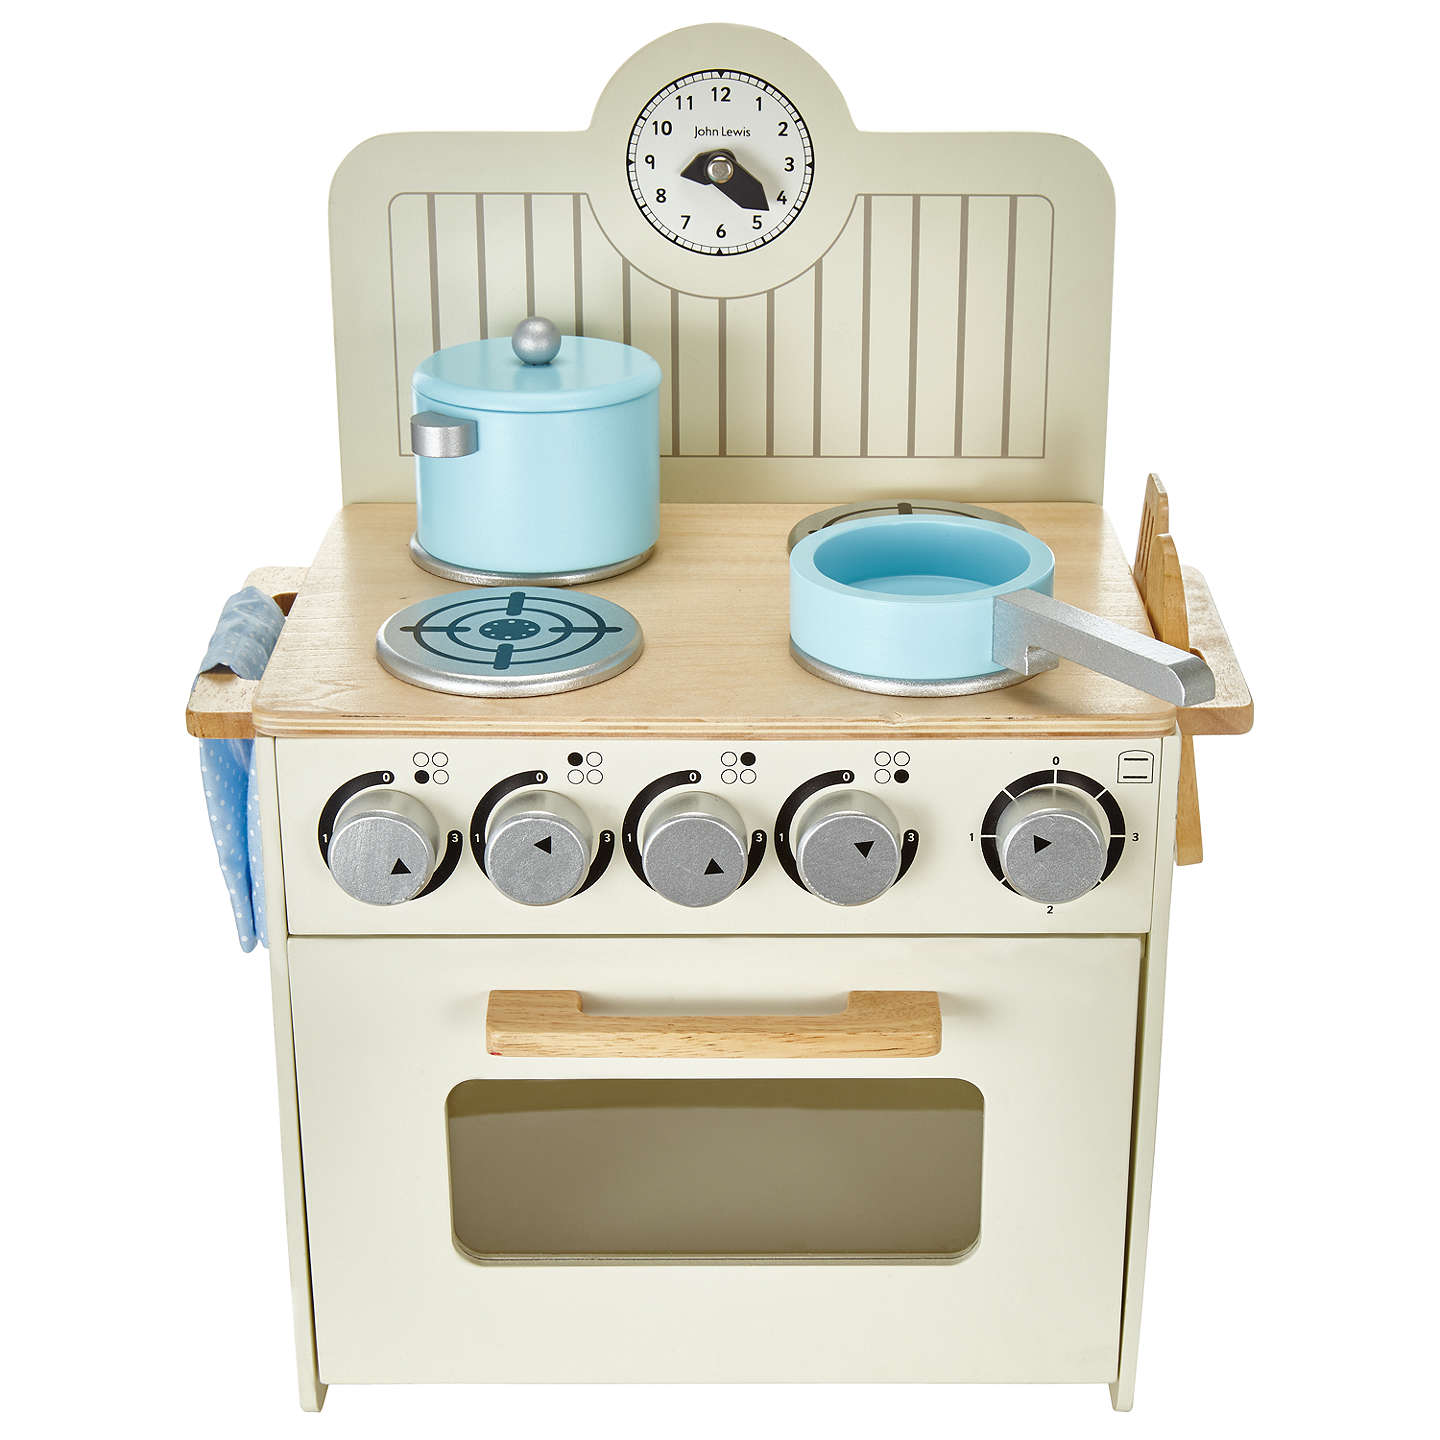 BuyJohn Lewis Wooden Mini Kitchen Online at johnlewis.com